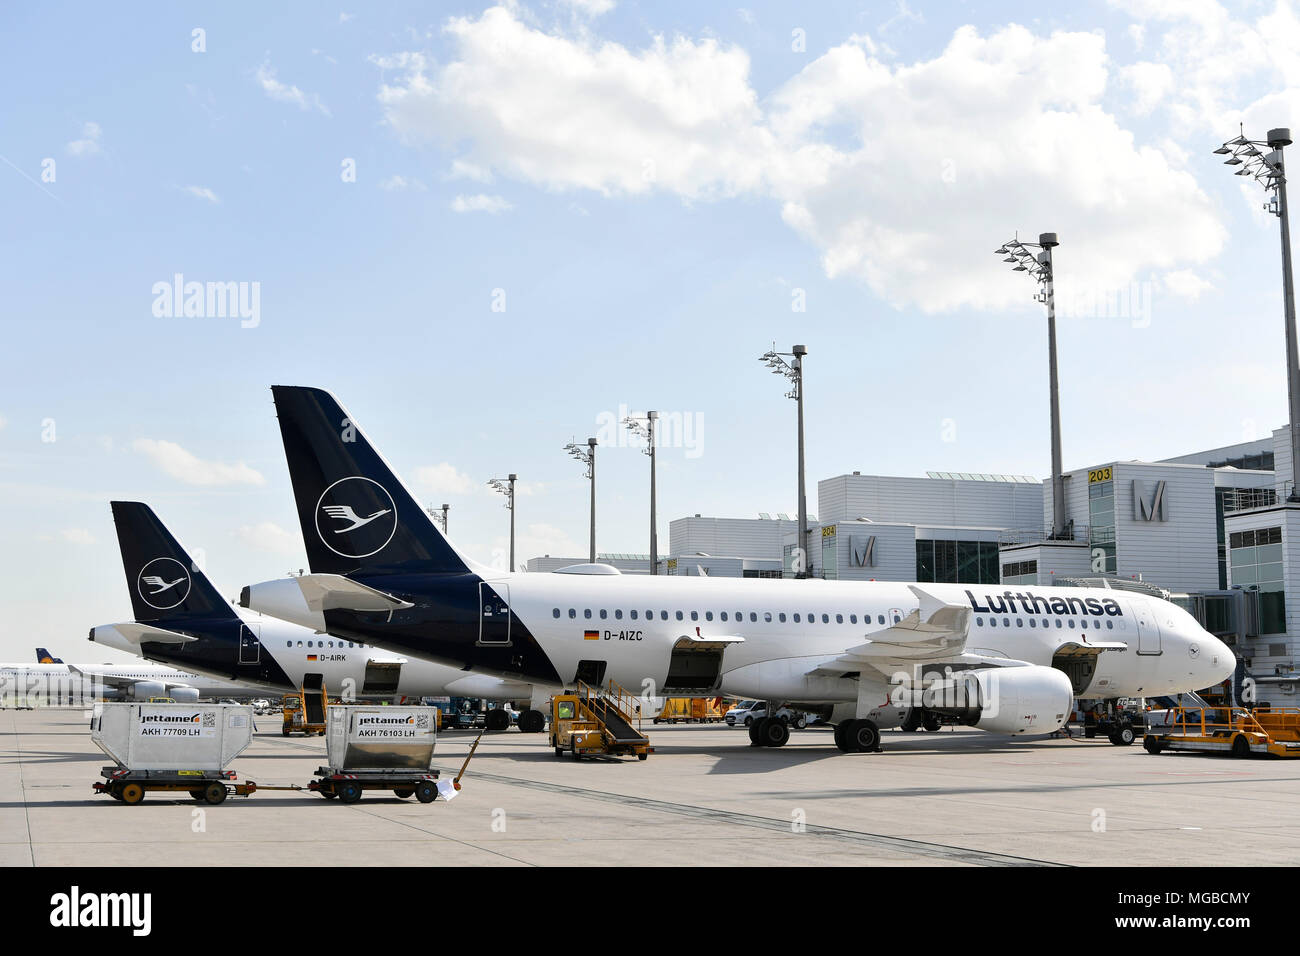 Lufthansa, A 320-200, A320, 200, Position, Ramp, clearance, Terminal 2, parking, New Livery, painting, Aircraft, Airplane, Plane, Airport Munich, MUC, - Stock Image